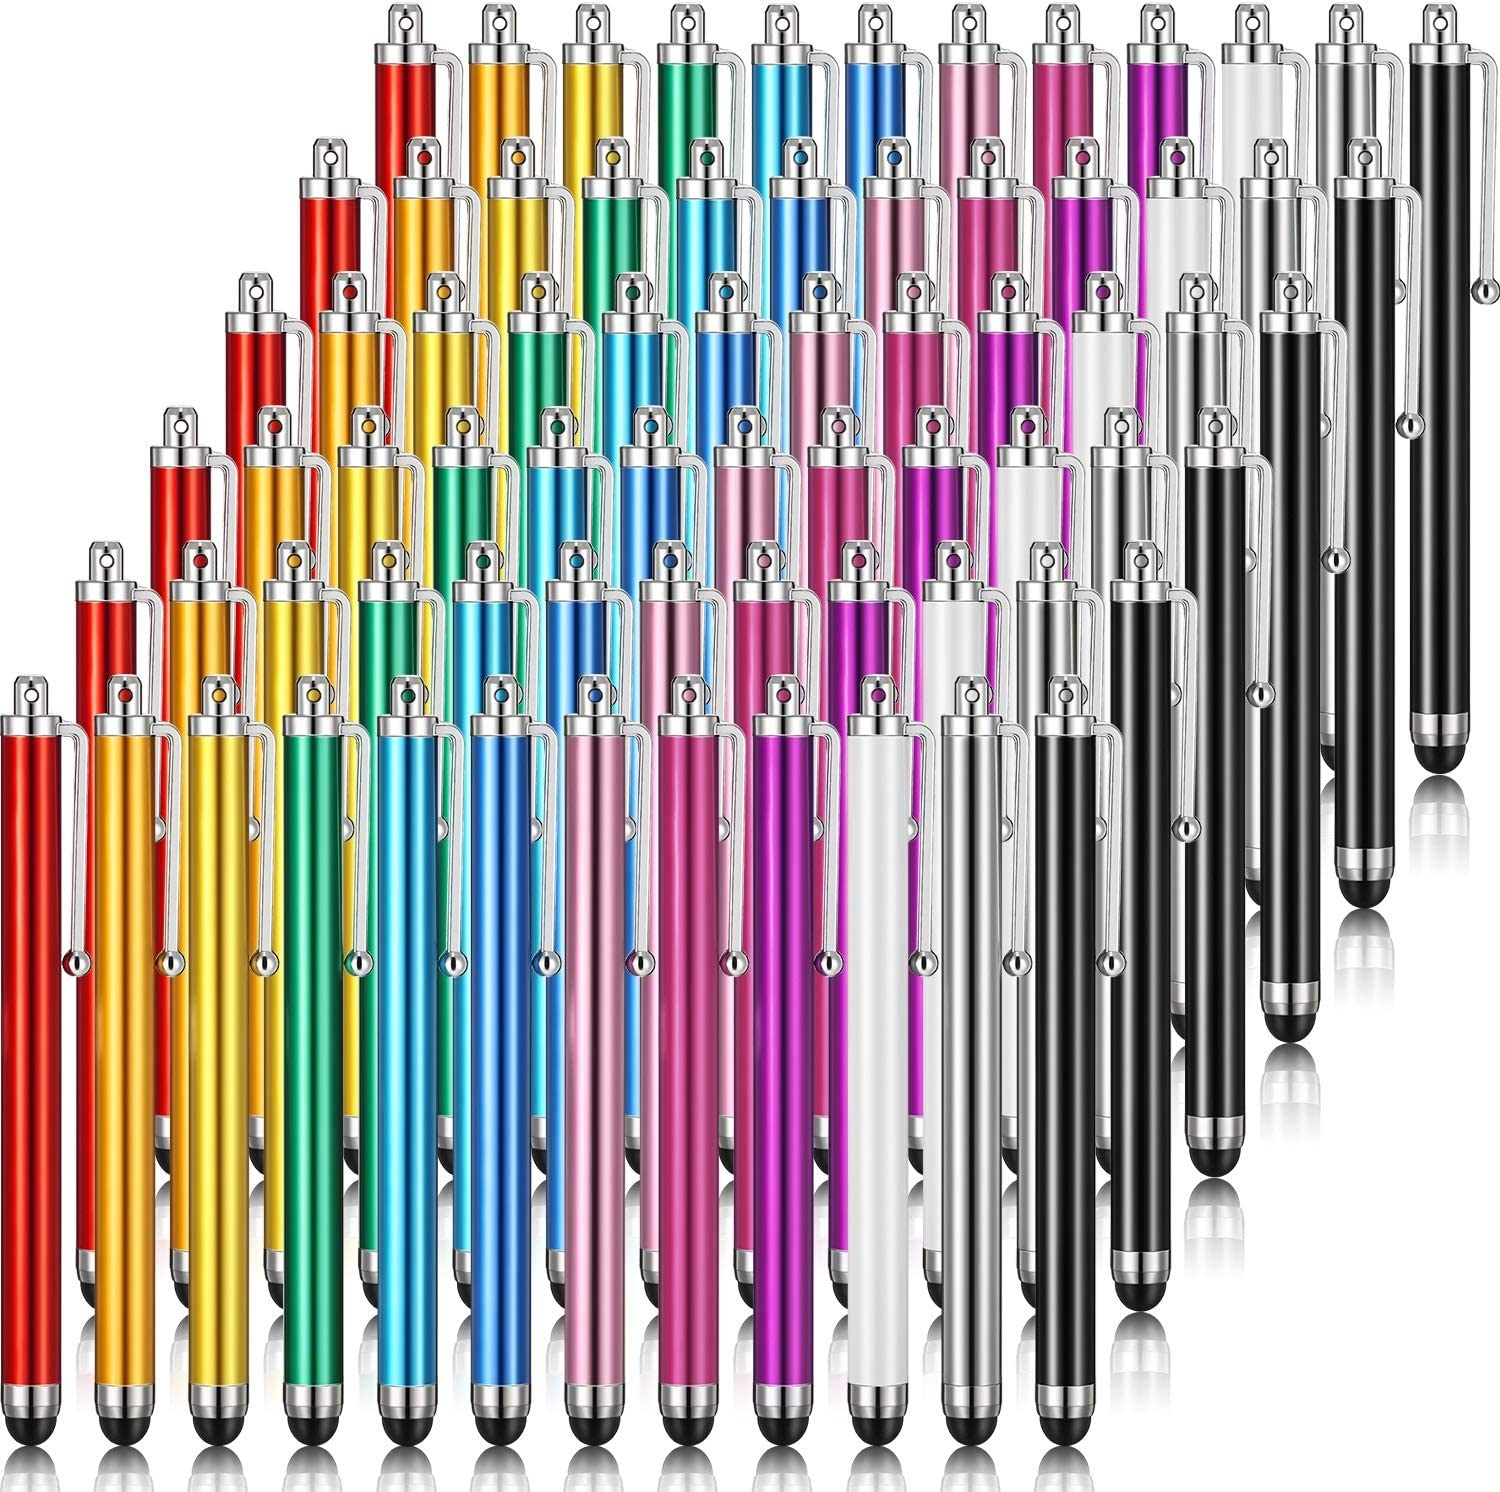 Stylus Pen Set of 72 for Universal Touch Screens Devices Capacitive Stylus Compatible with iPhone, iPad, Tablet (12 Colors)